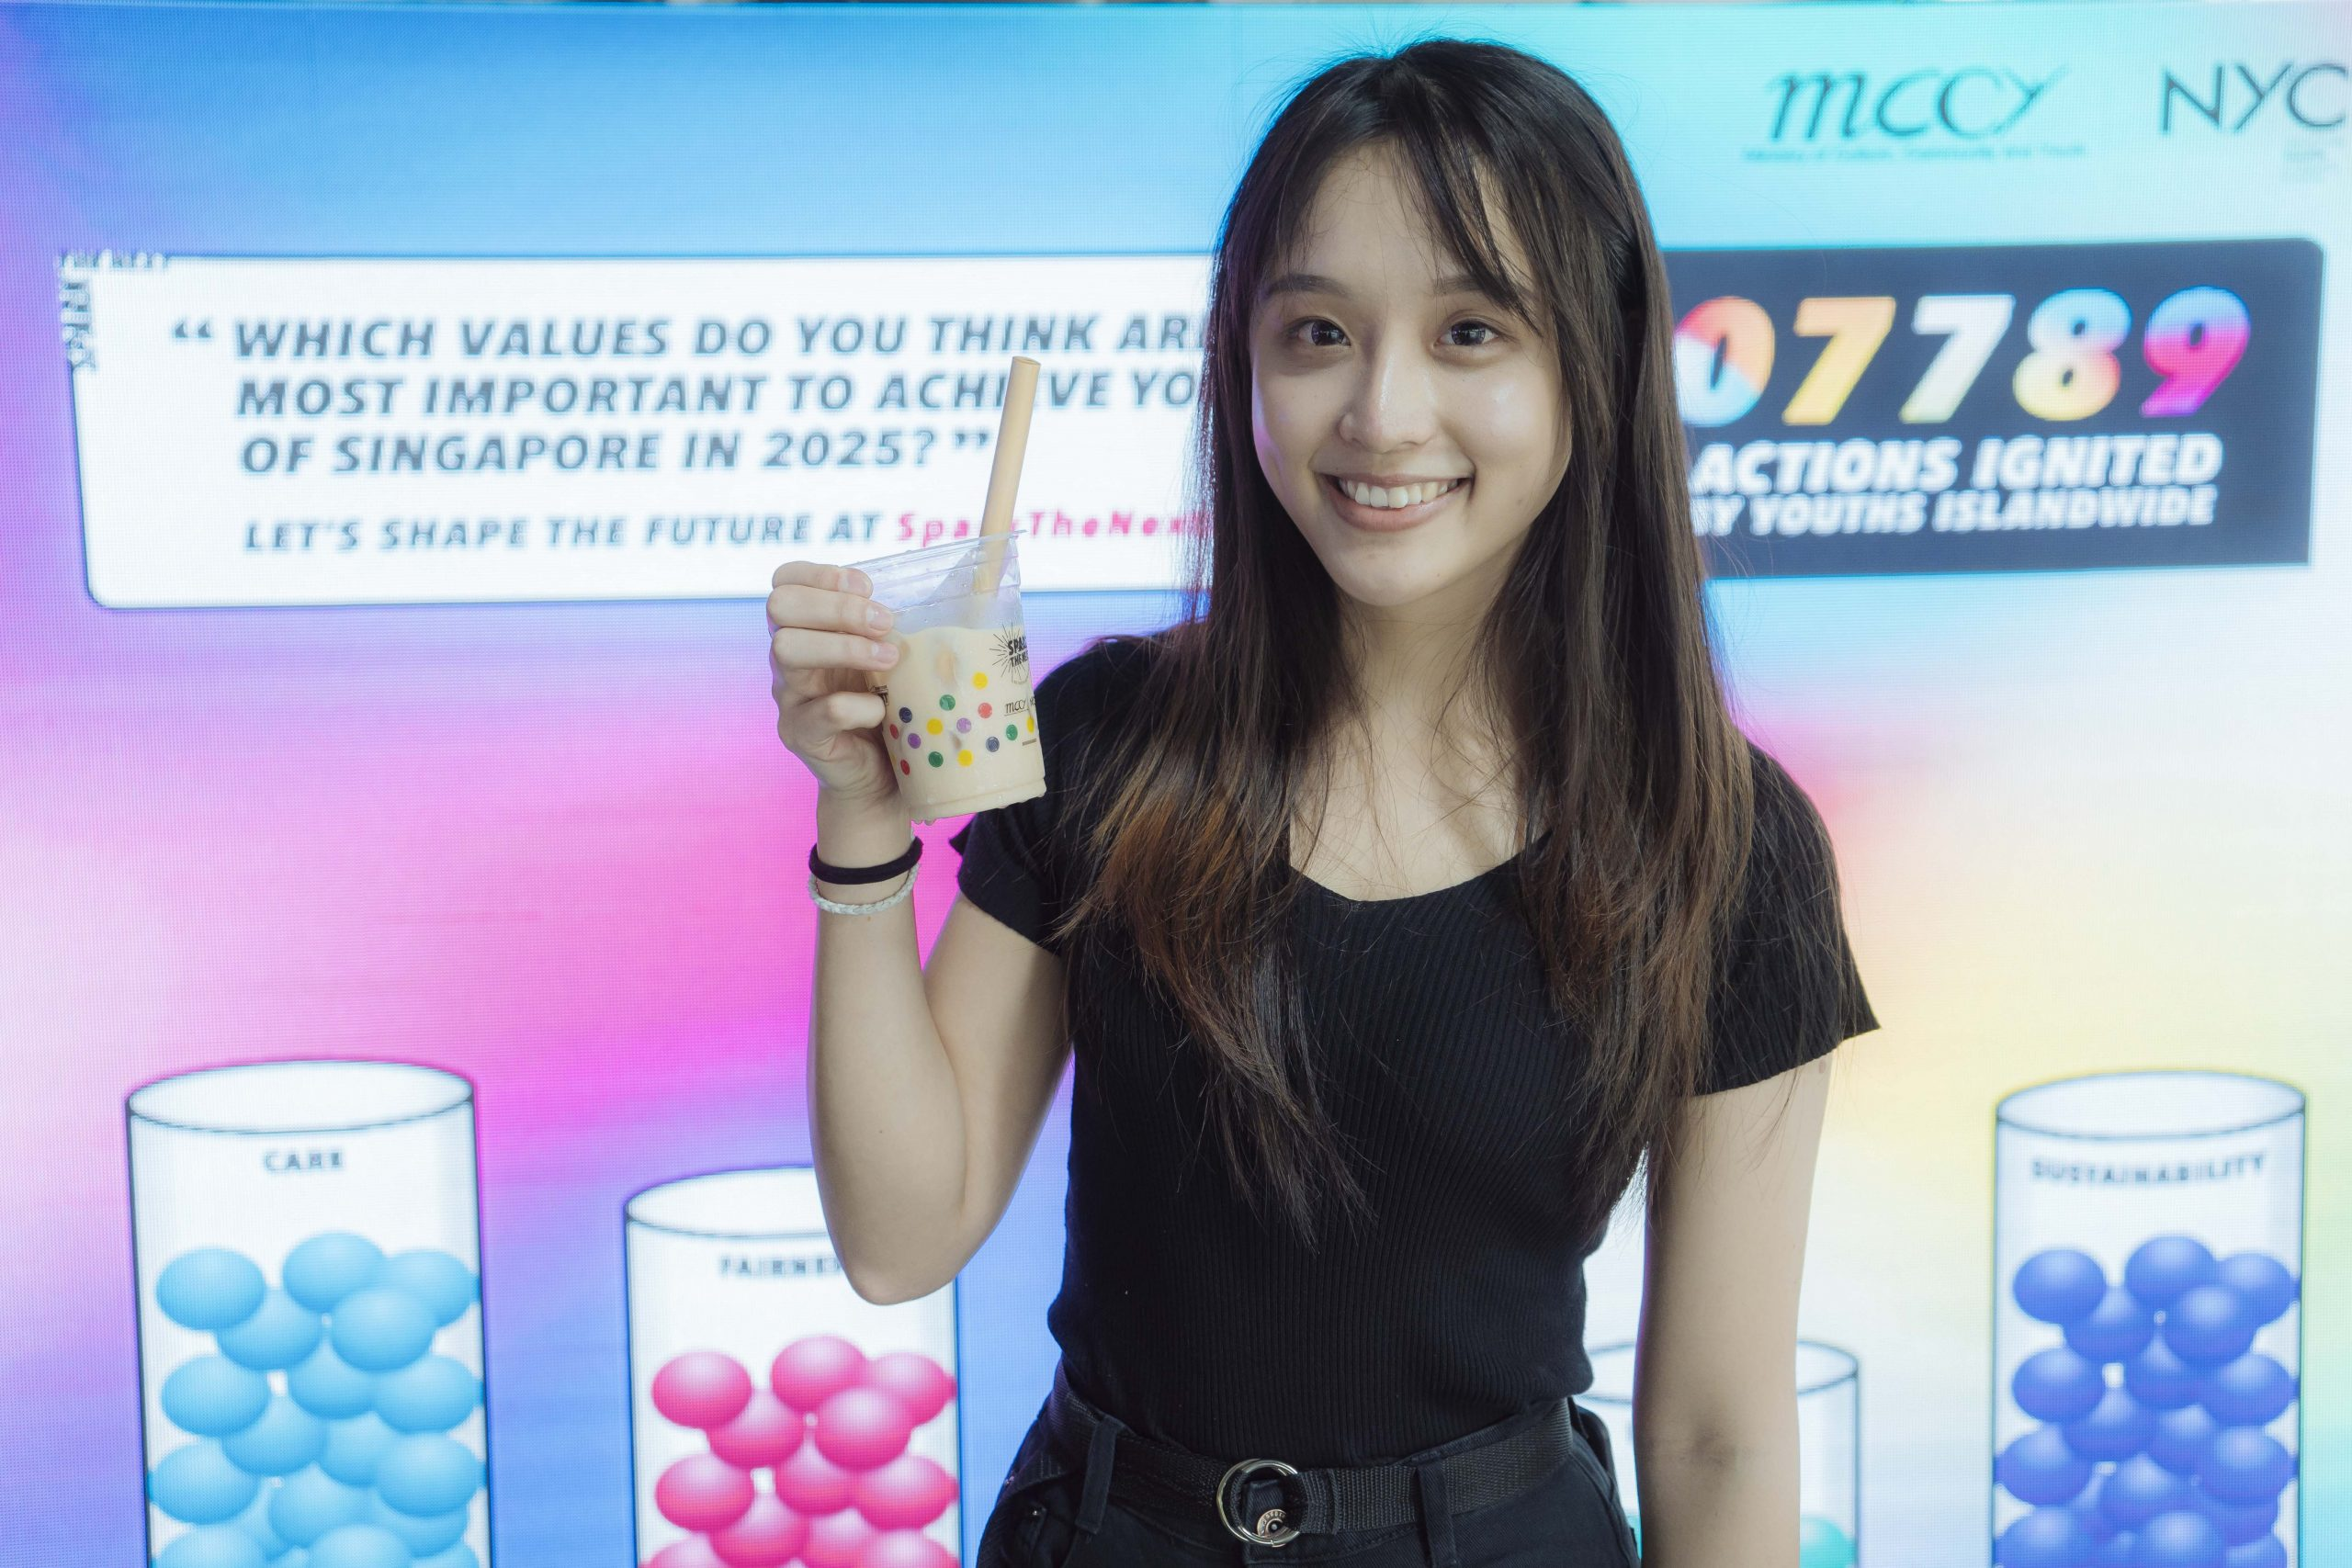 A girl poses with her free cup of bubble tea in front of the MCCY Network Voting System